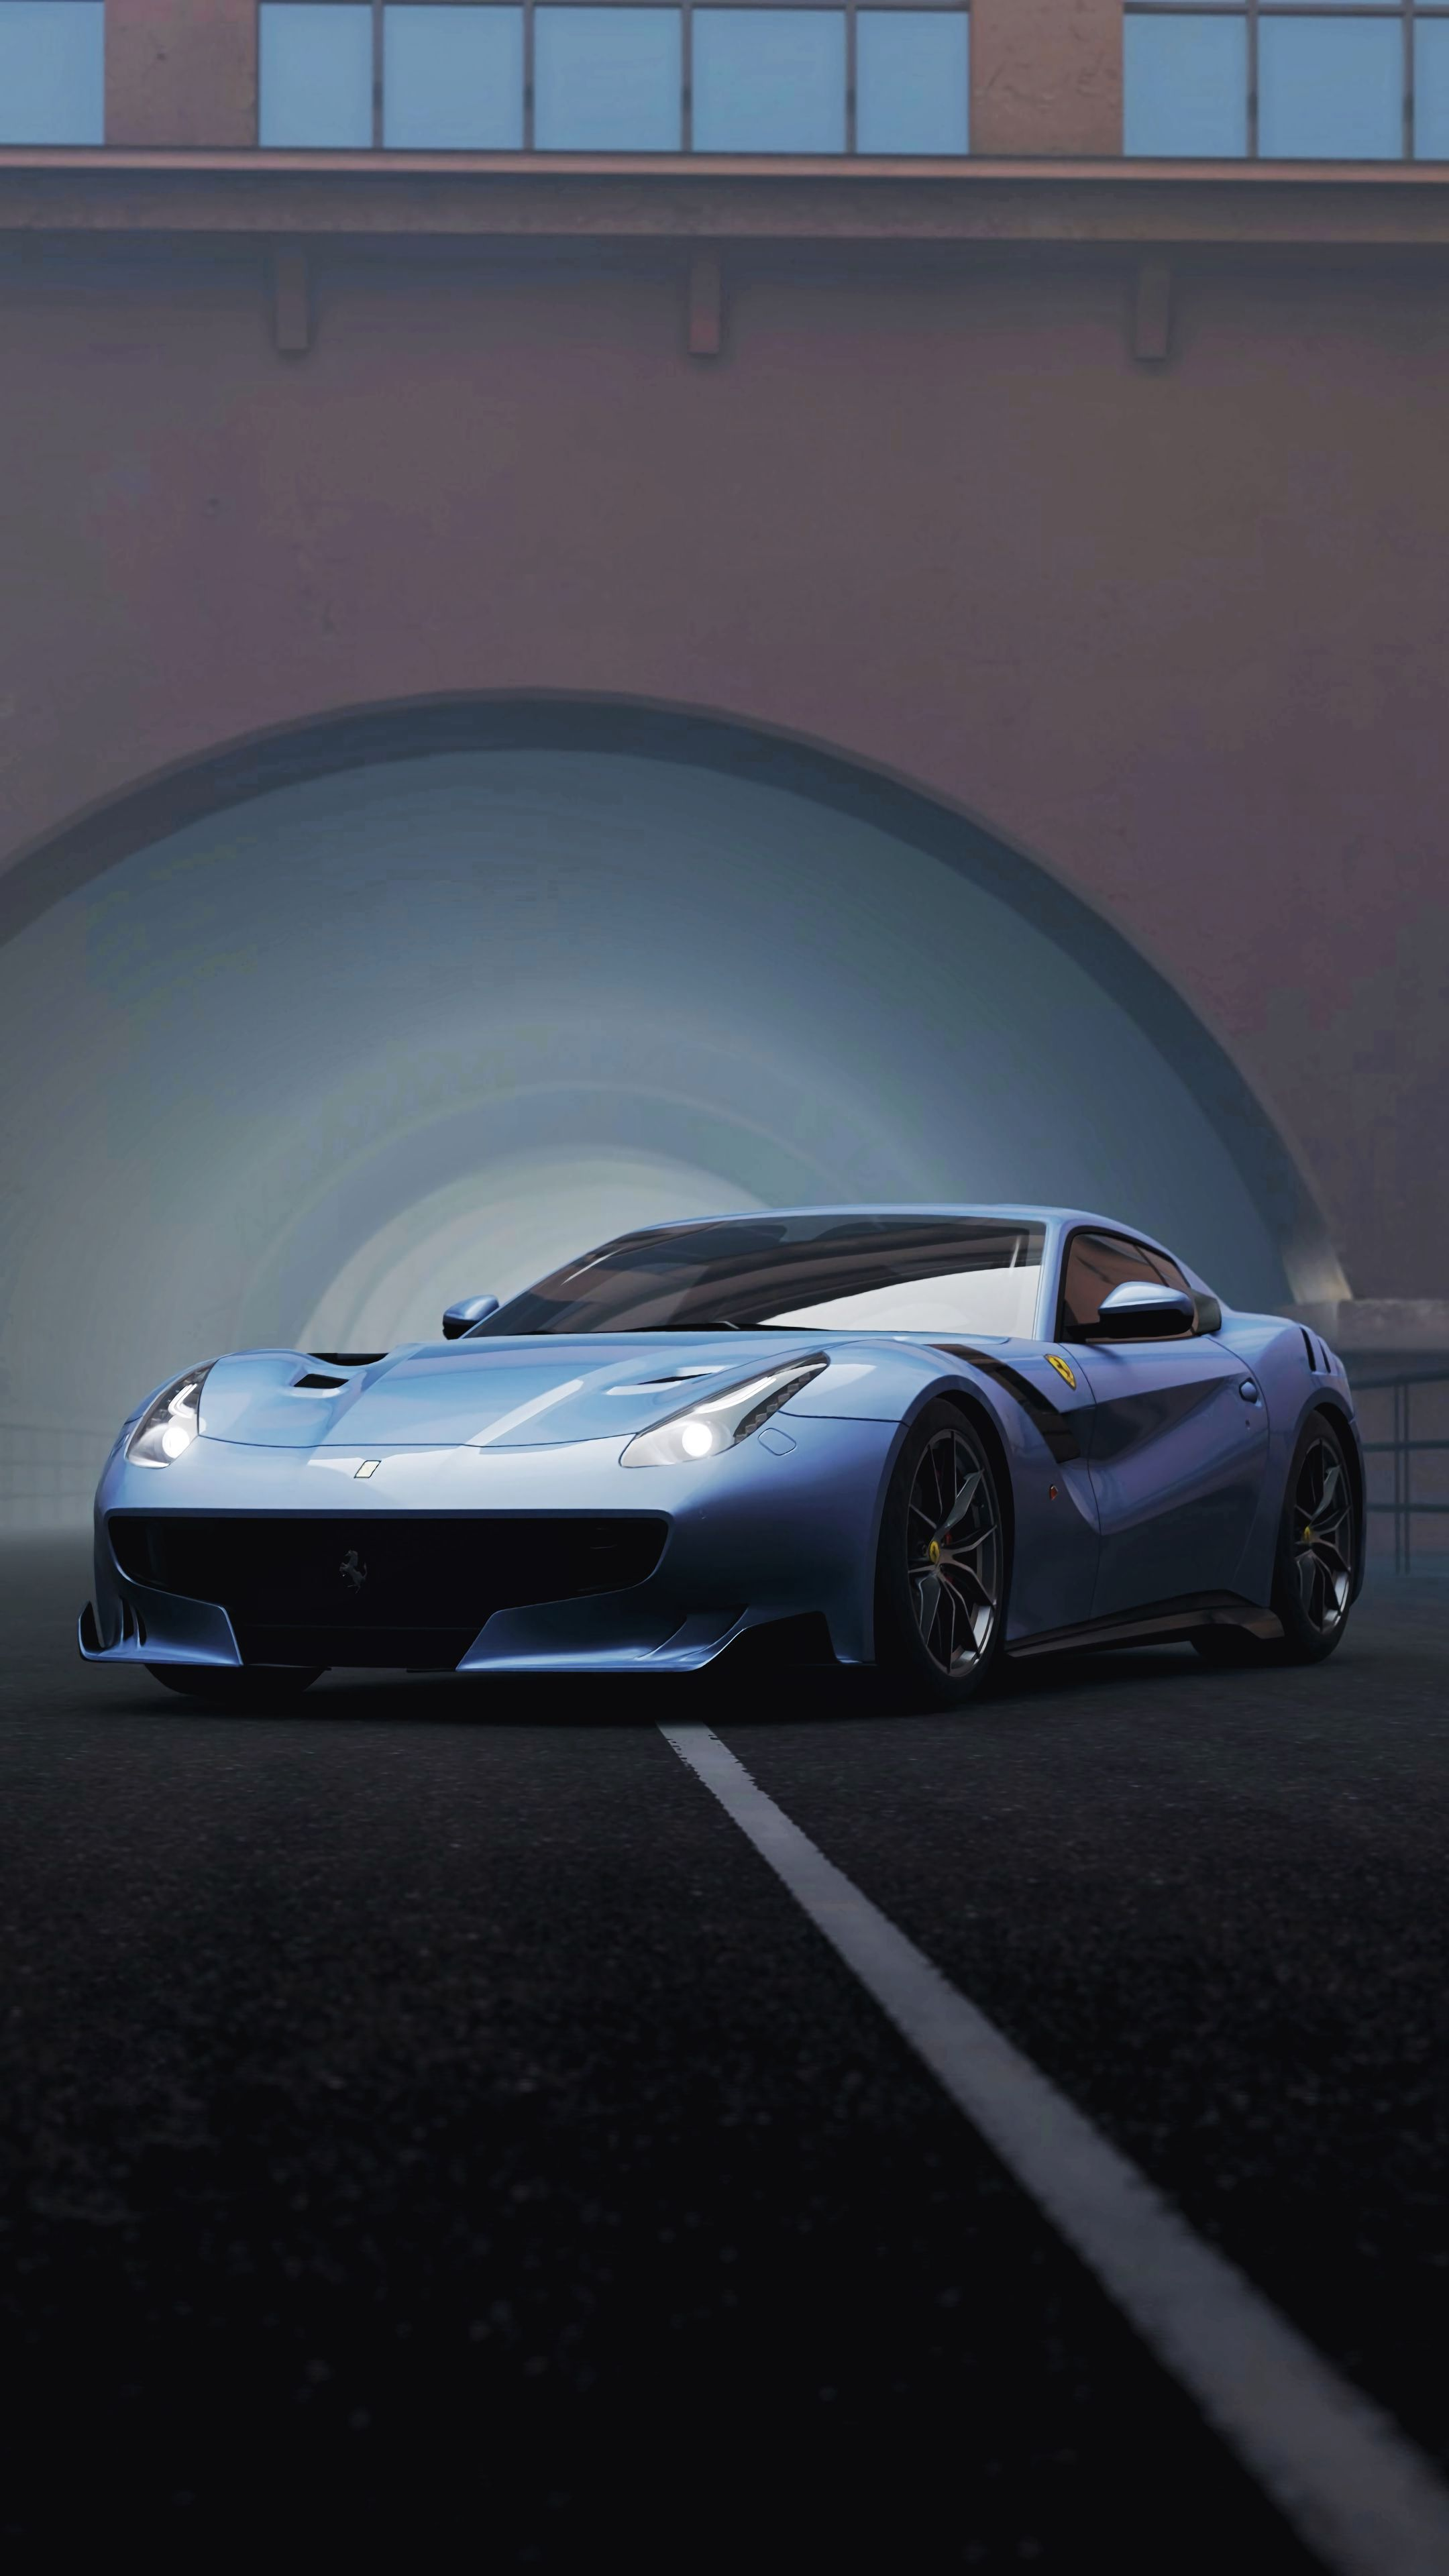 113926 download wallpaper Cars, Ferrari F12, Ferrari, Sports Car, Sports, Races, Front View, Supercar screensavers and pictures for free